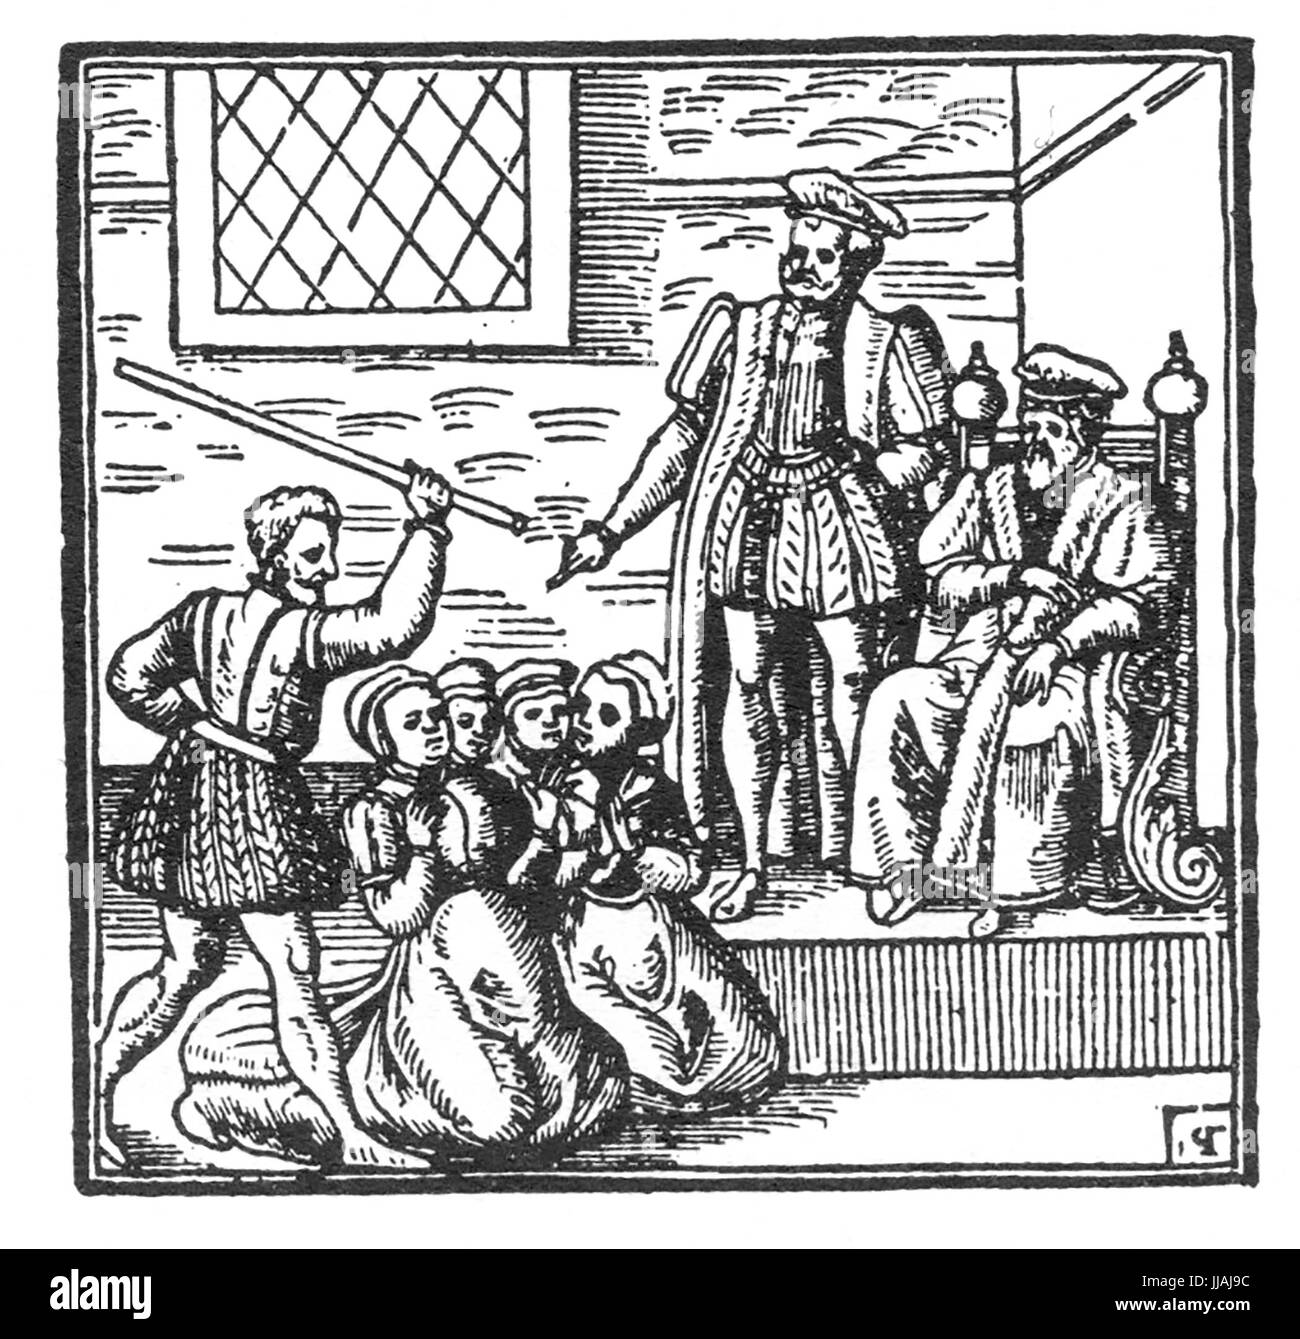 NORTH BEWICK WITCH TRIALS 1590-1592. King James VI of Scotland examines  some of the accused. Woodcut in his Daemonologie published in 1597